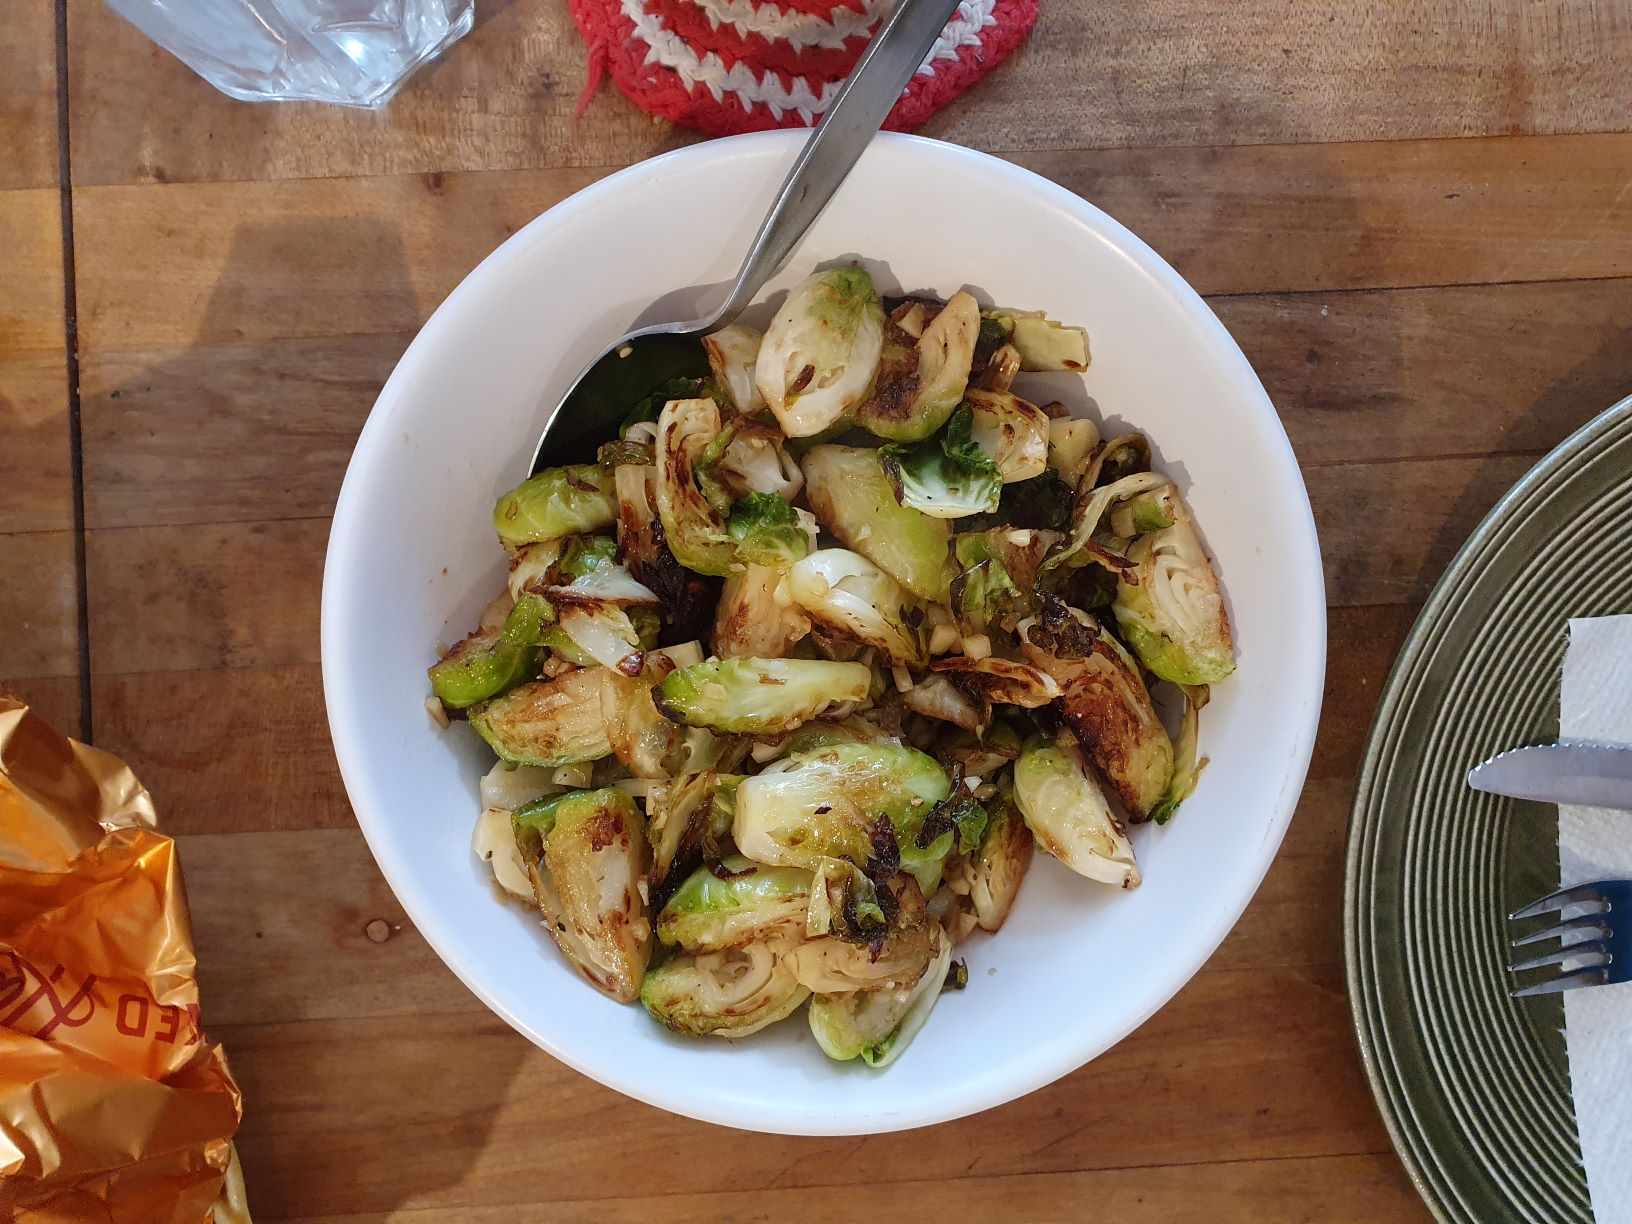 Hone roasted brussel sprouts a pefect holiday side dish.